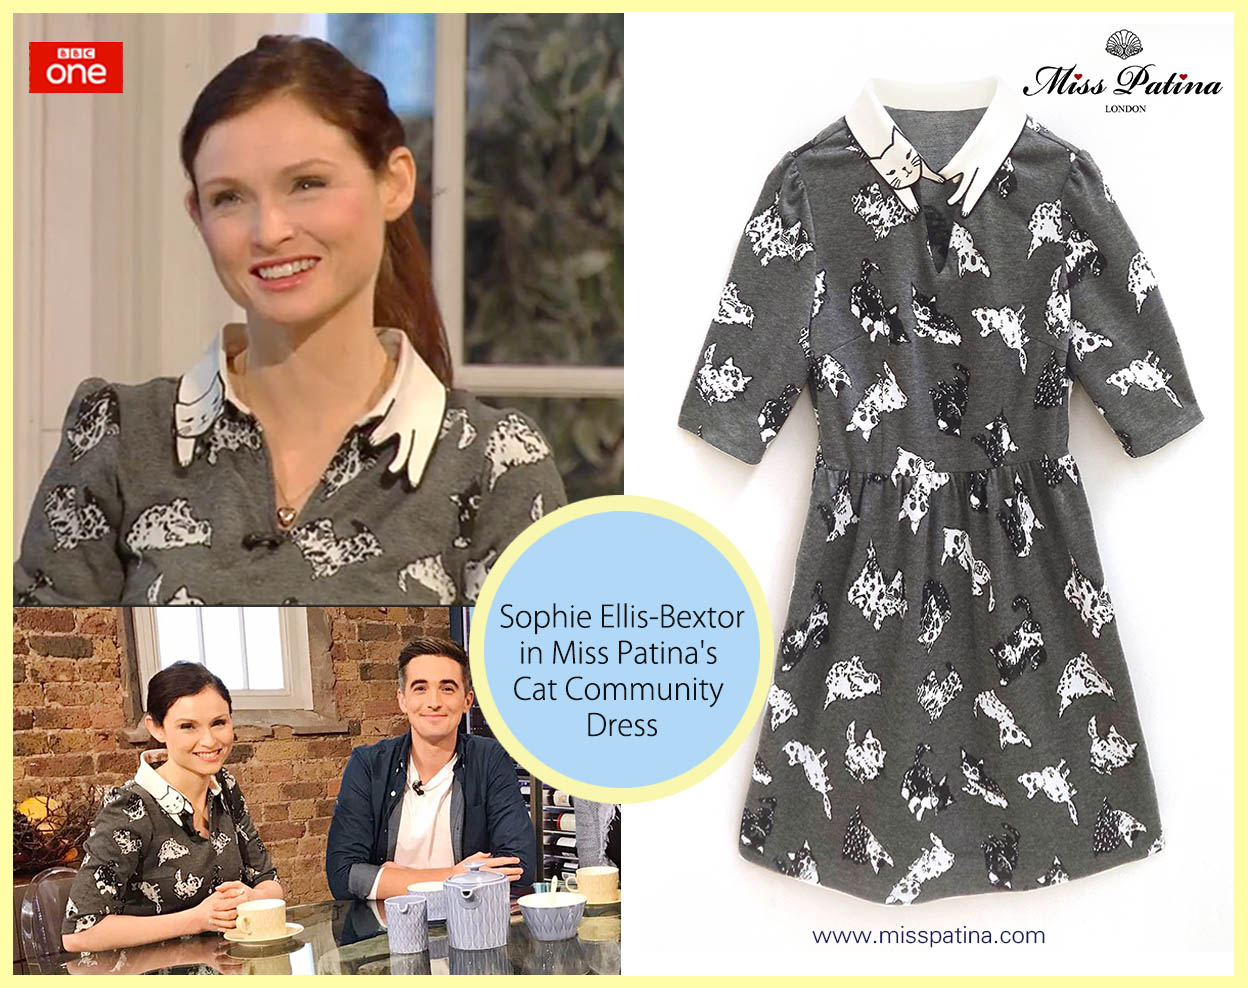 Sophie Ellis-Bextor in Miss Patina